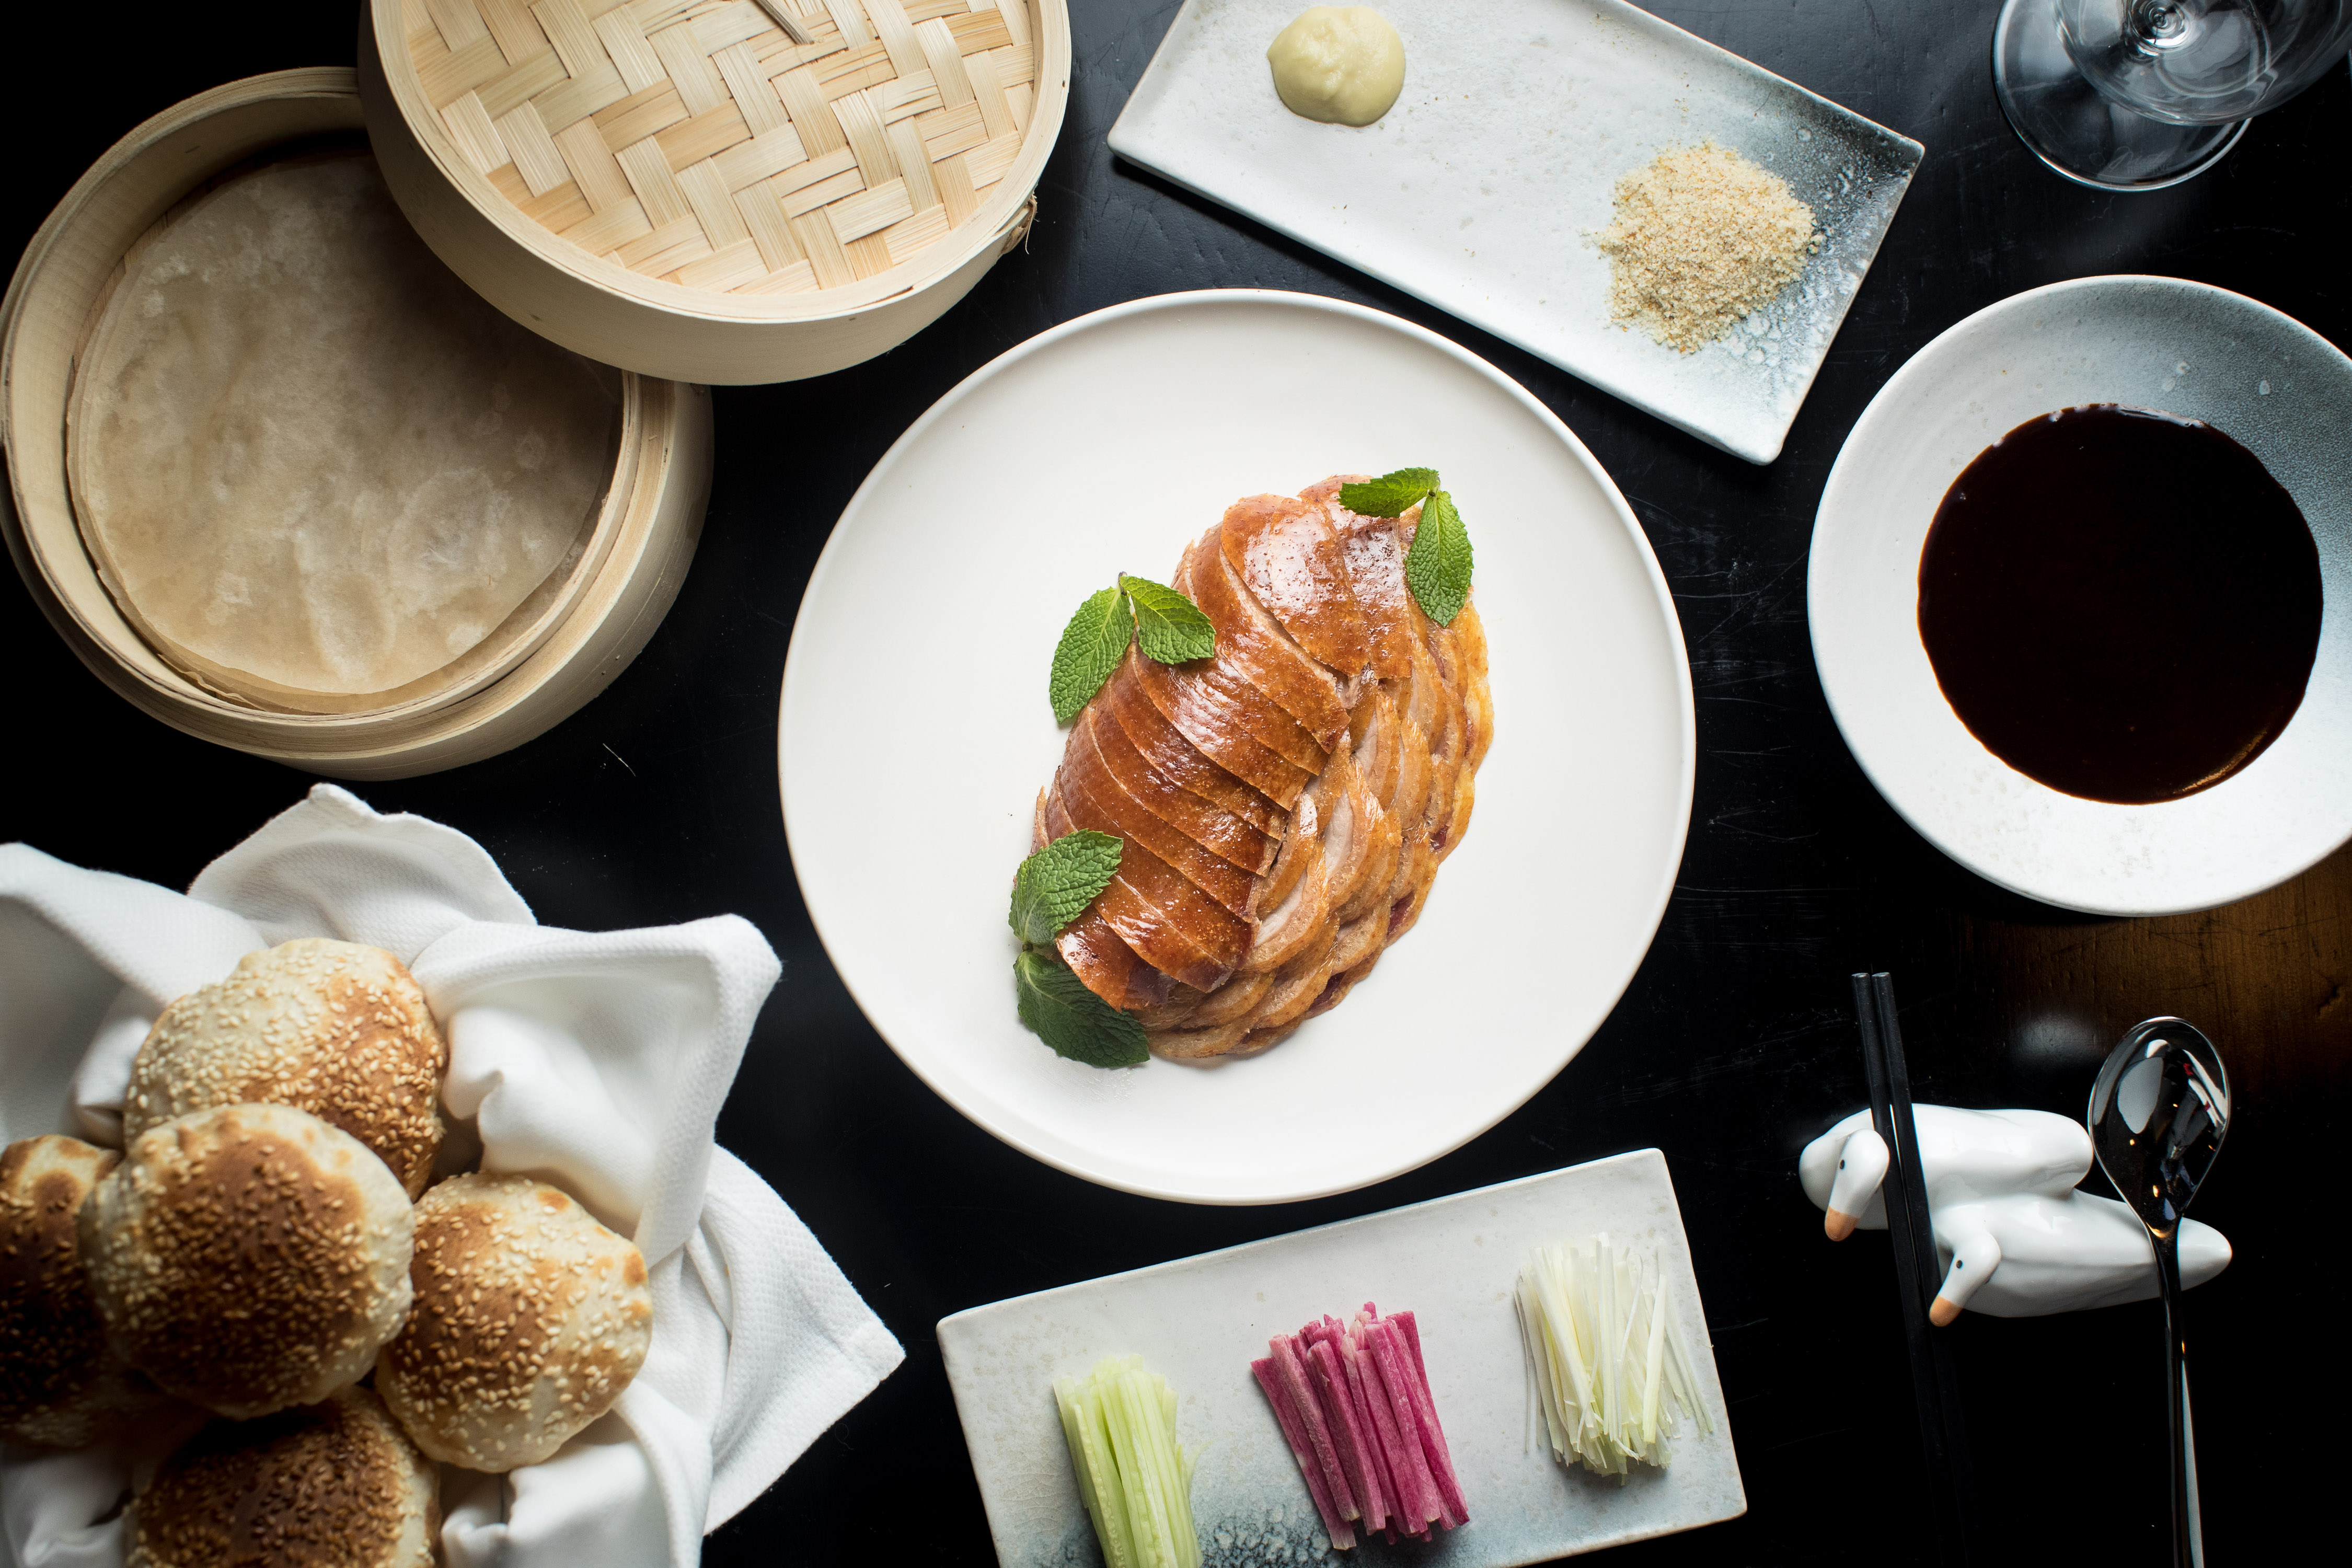 A spread of dishes laid out on a table demonstrating items on the restaurant's menu, including a centerpiece roast duck